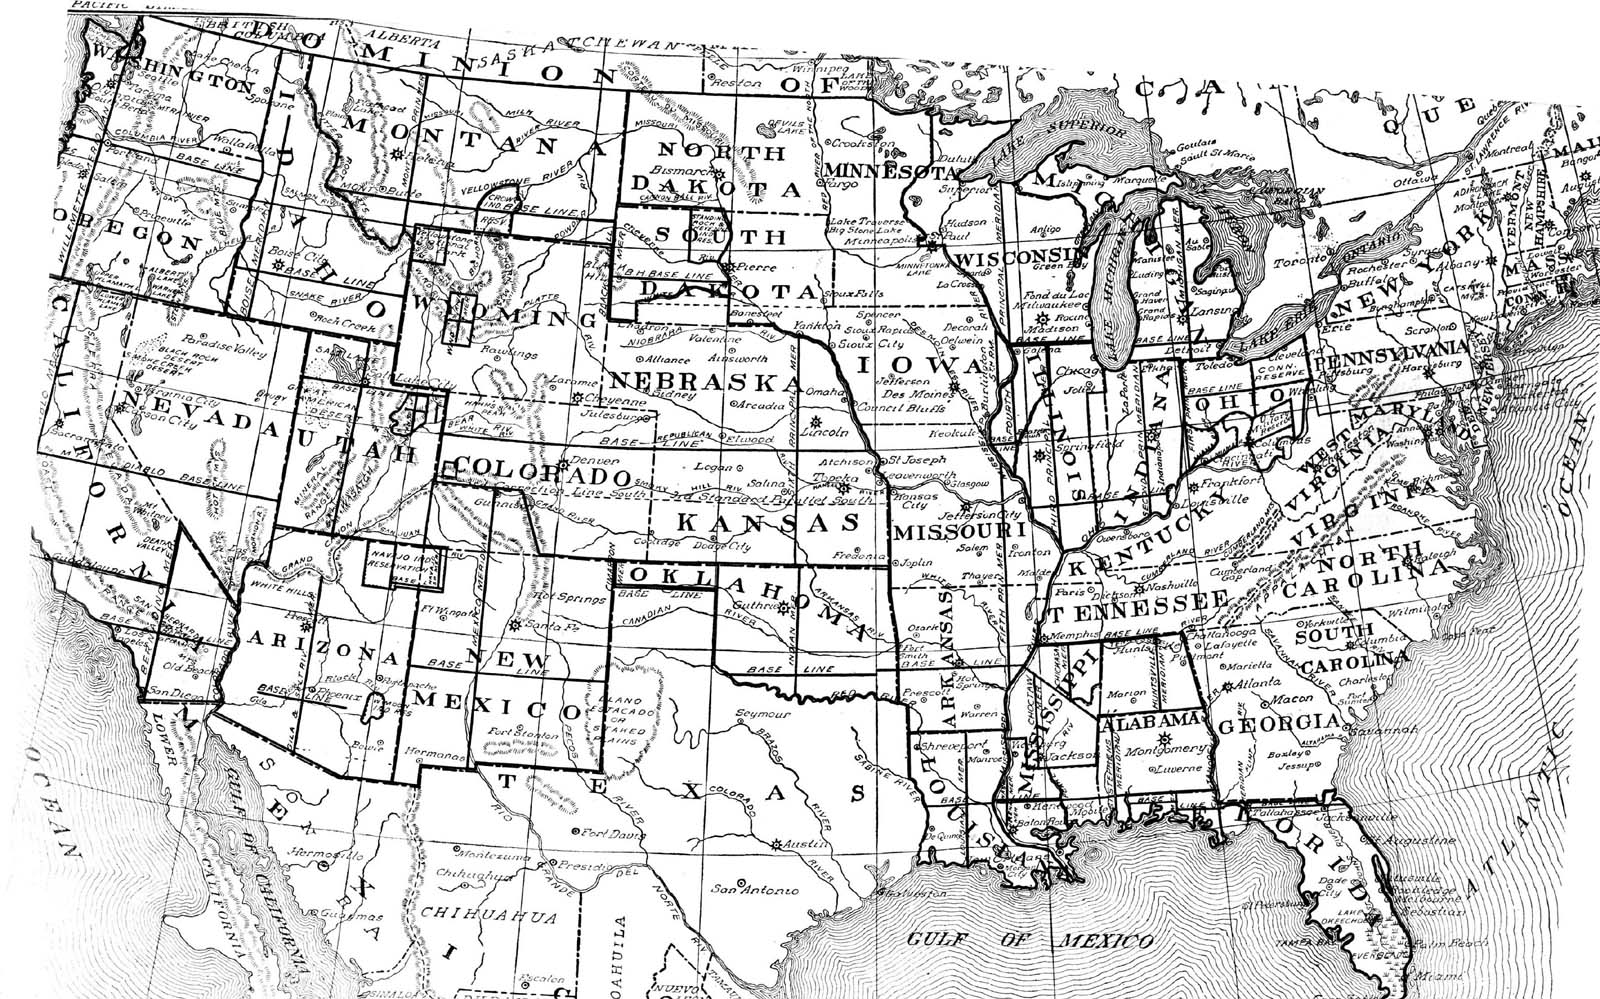 Blank Outline Maps Of The States Of The USA United States Of - Us map with lines of latitude